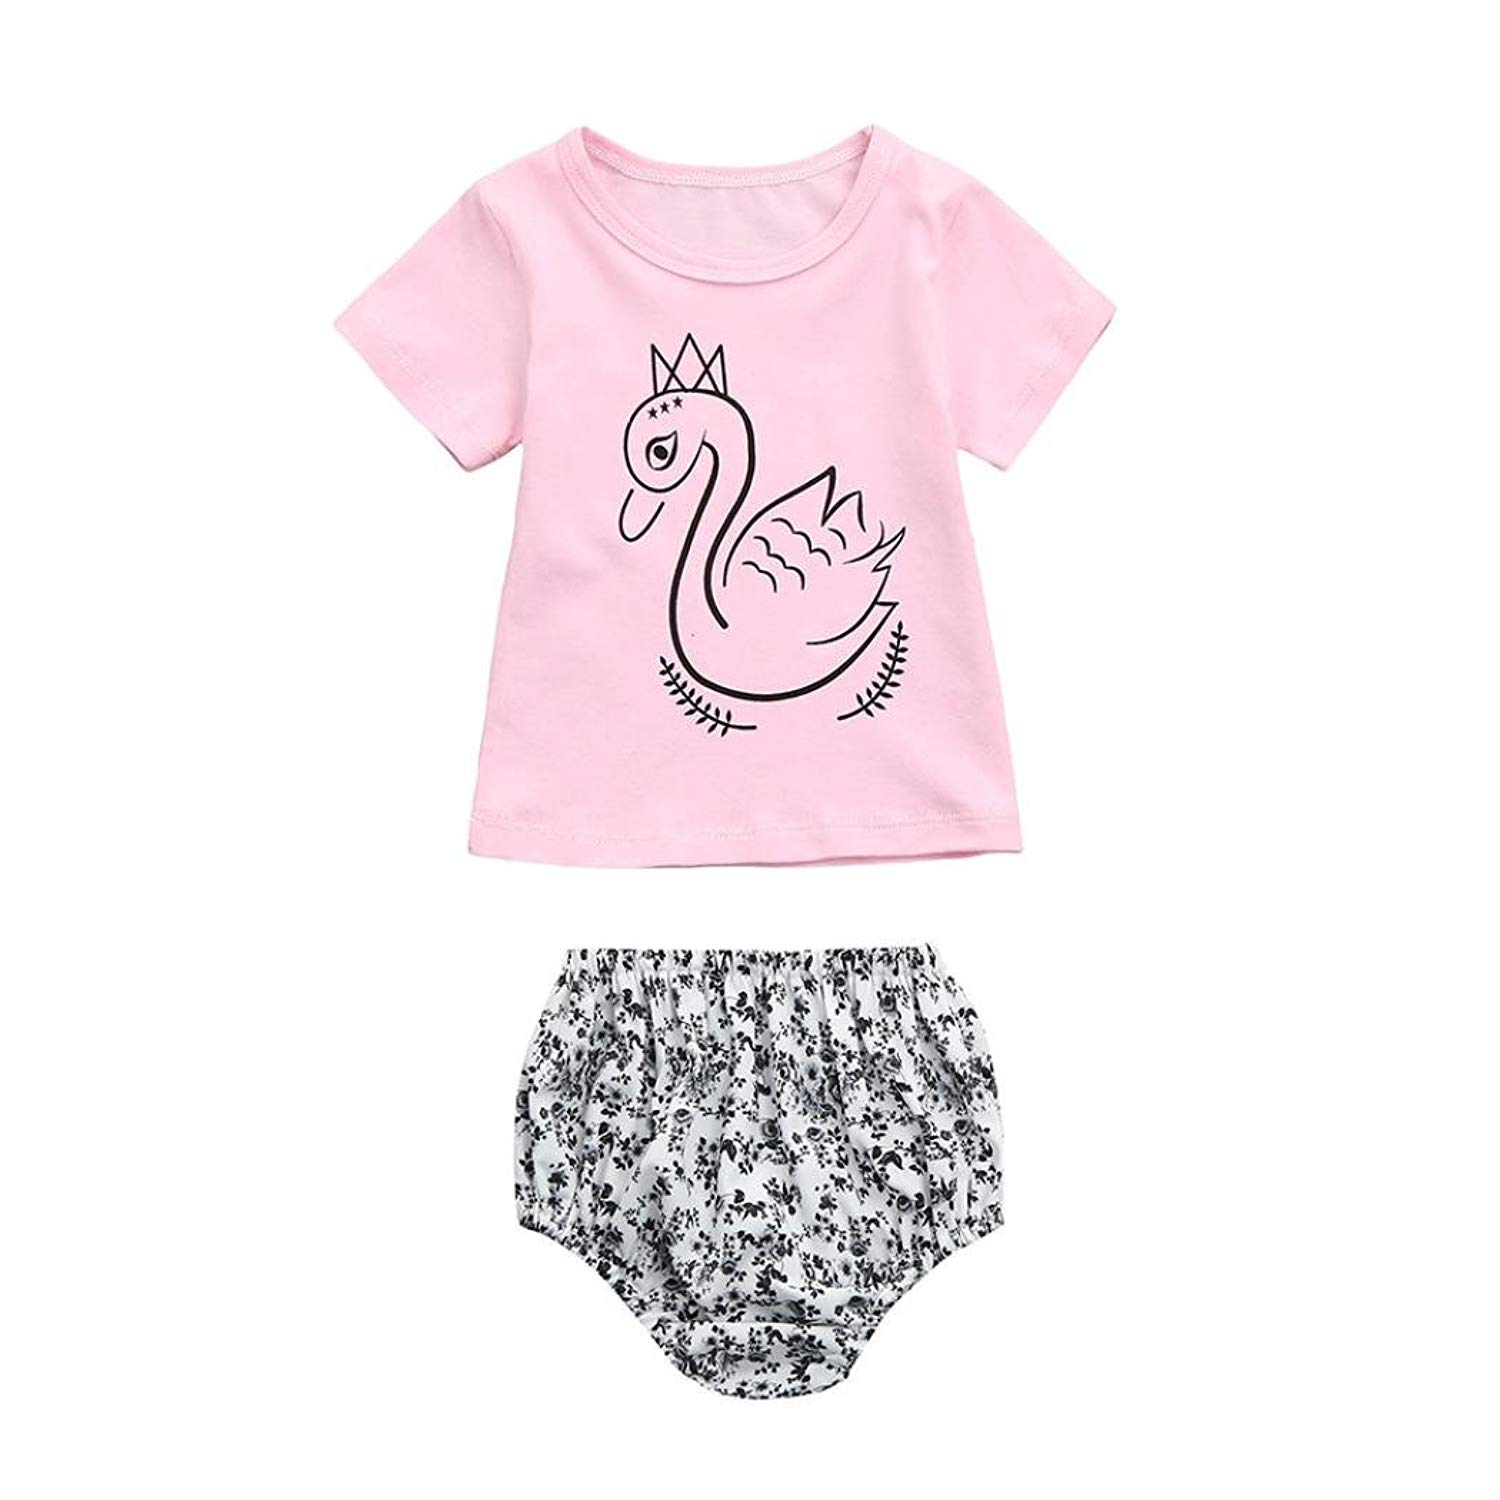 e790f24f ... Pants Kids Outfits. Get Quotations · Winsummer Cute Newborn Baby Girls  Short Sleeve Swan Print T-Shirt Top+High Waist